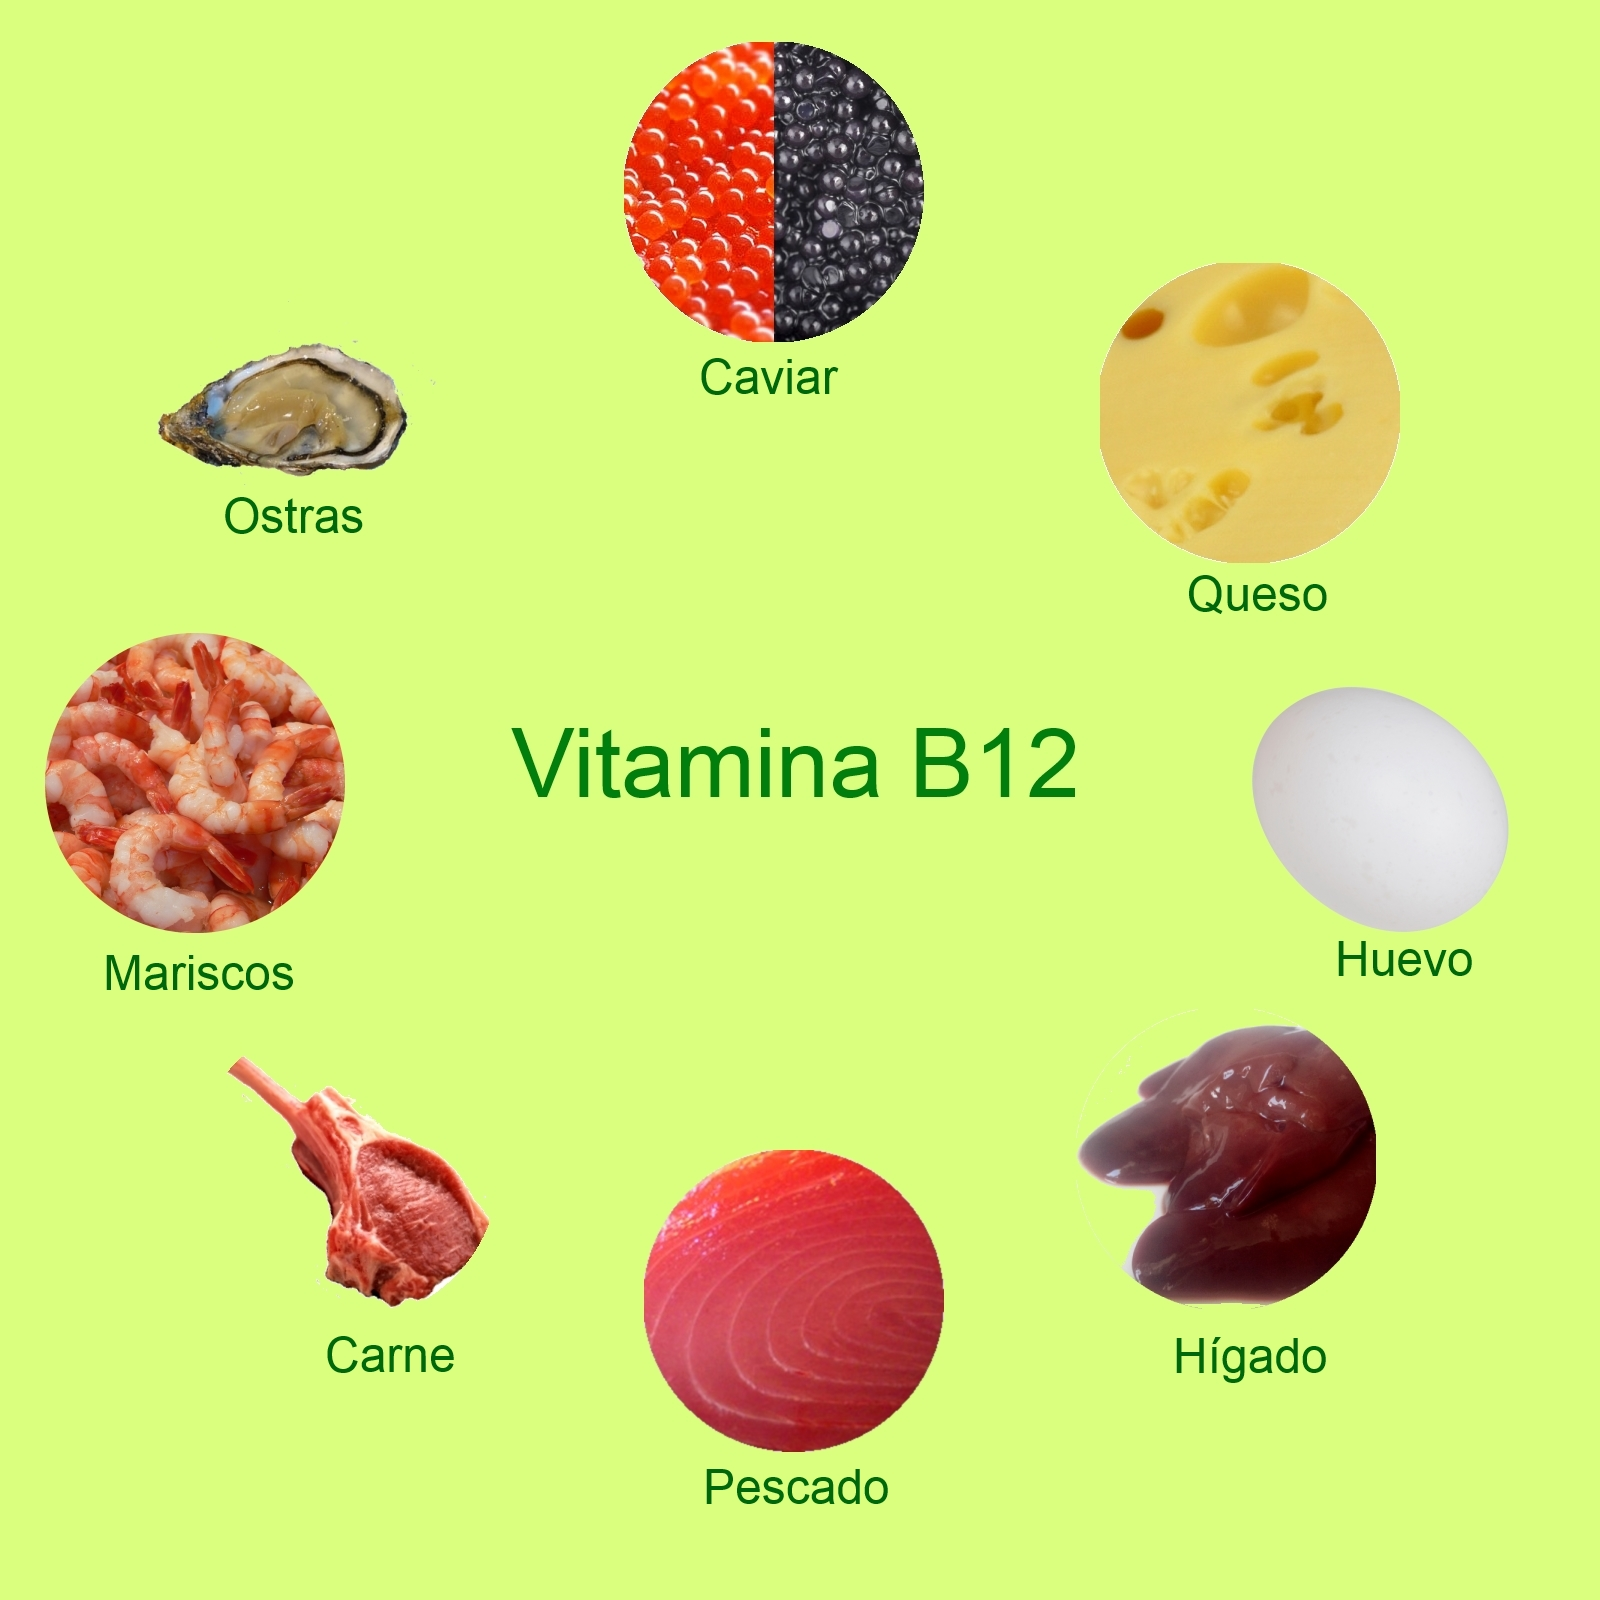 Mini posts de despierta t que duermes vitamina b12 for Comidas con d